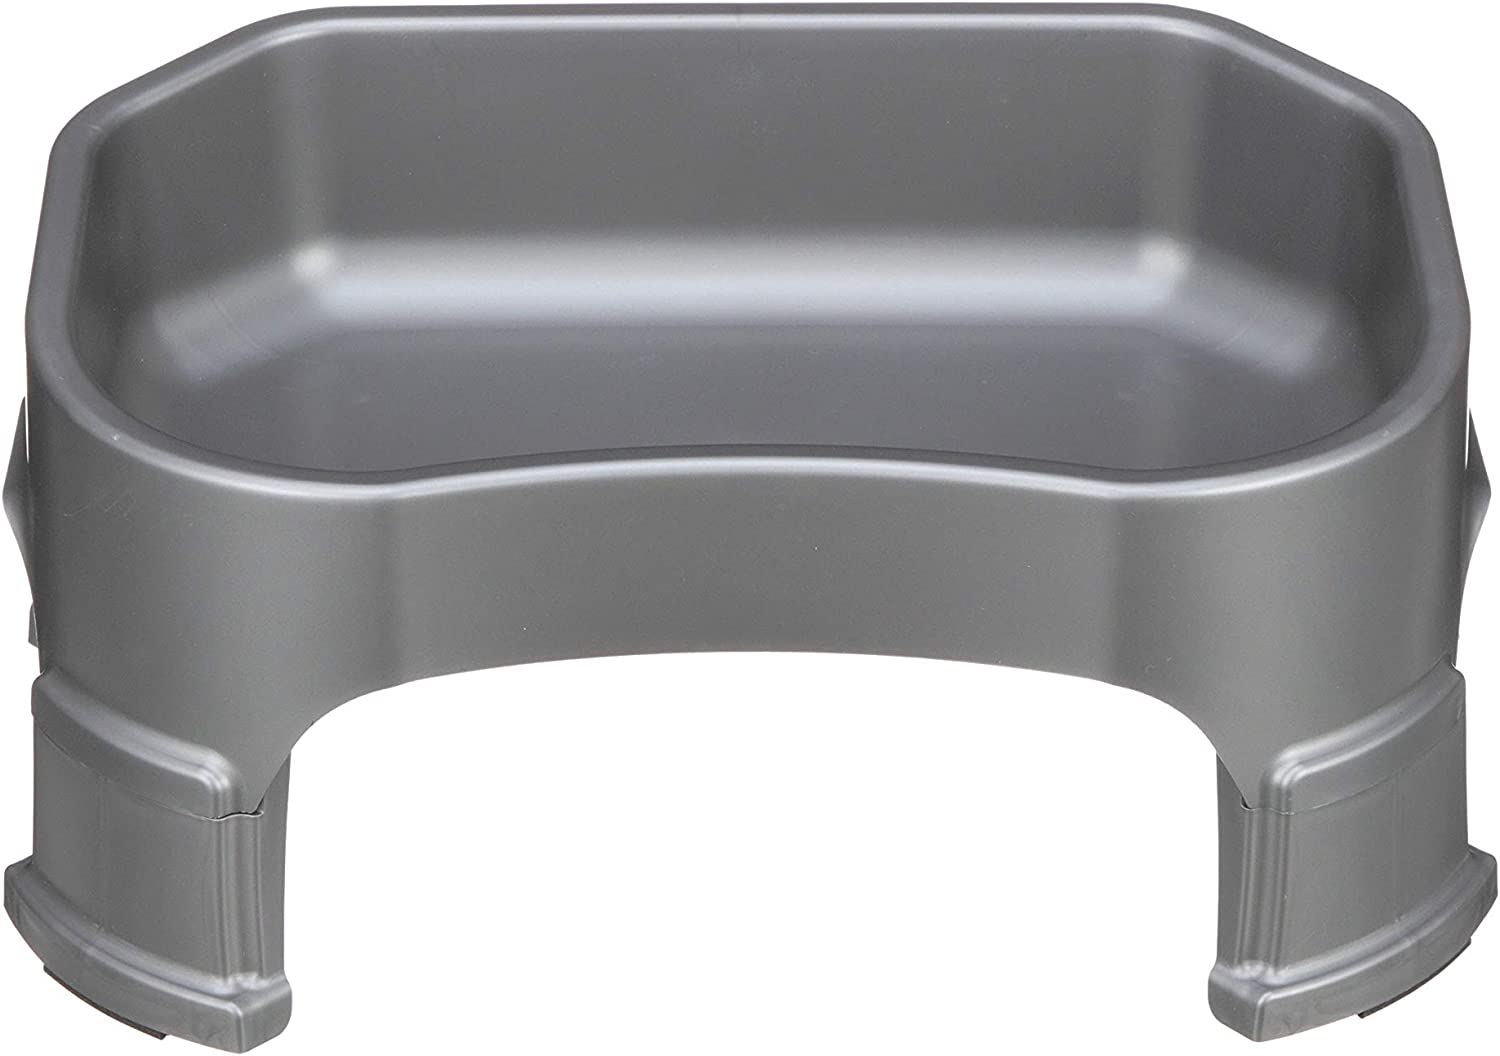 Neater Pet Brands Big Bowl with Leg Extensions - (1.25 Gallon/160 oz, Gunmetal Grey) Huge Jumbo Trough Style Dog Pet Water Dish